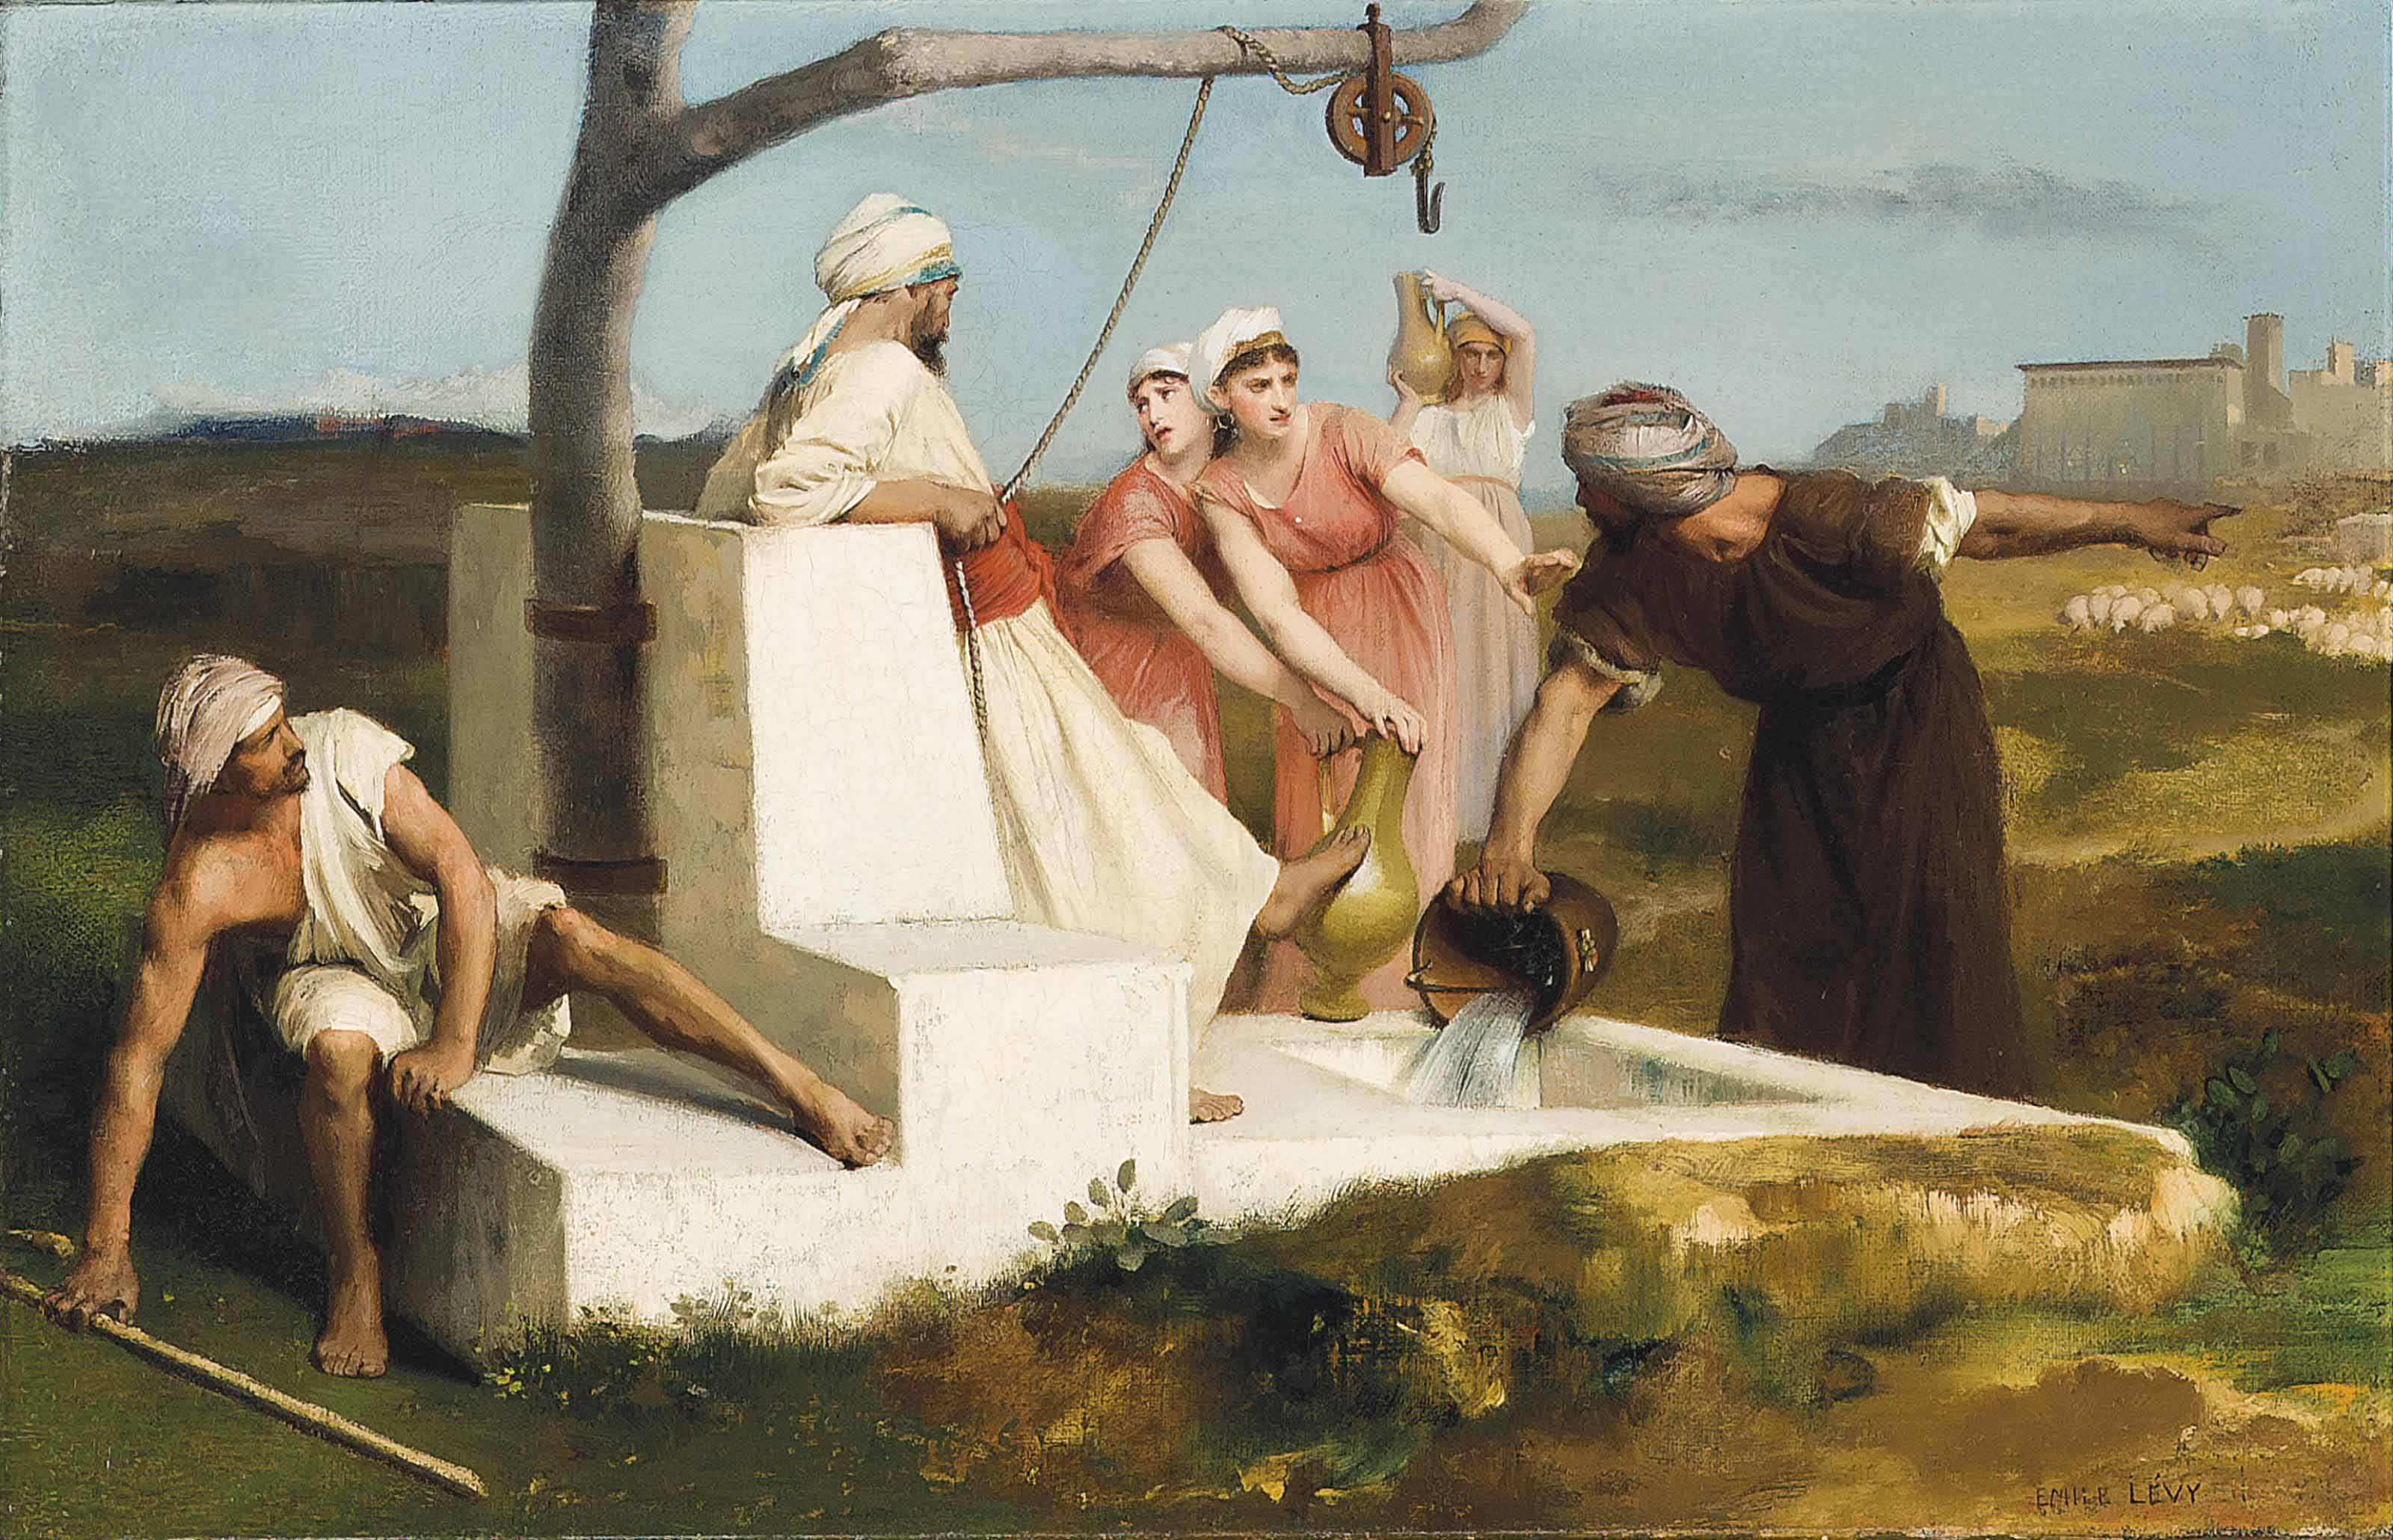 Dispute at the well